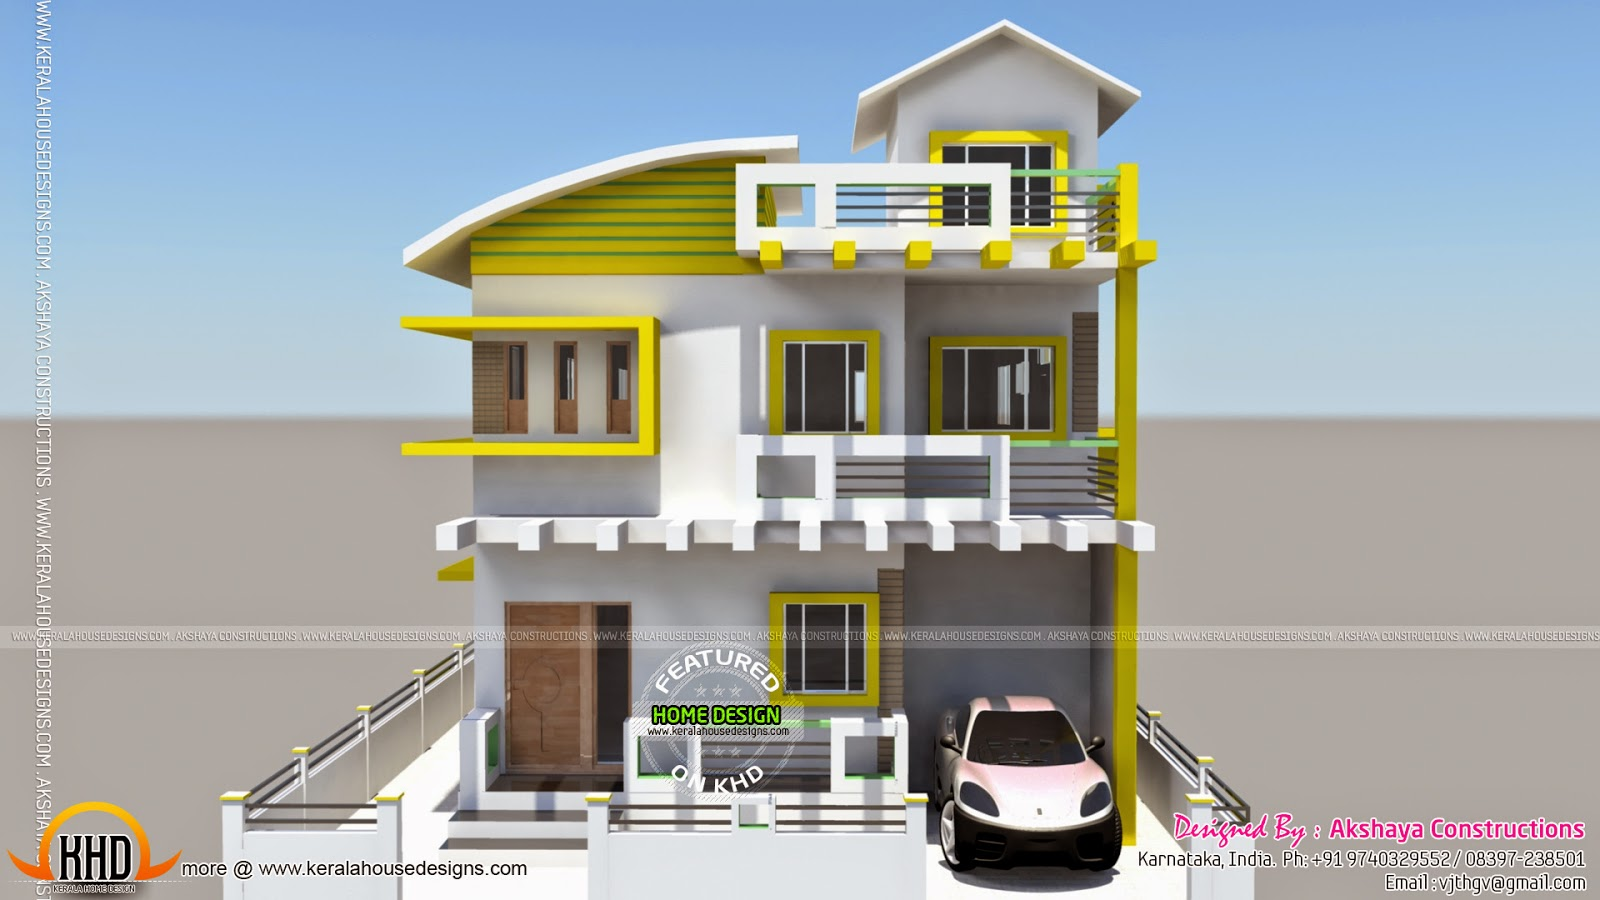 Karnataka home design kerala home design and floor plans for House and design